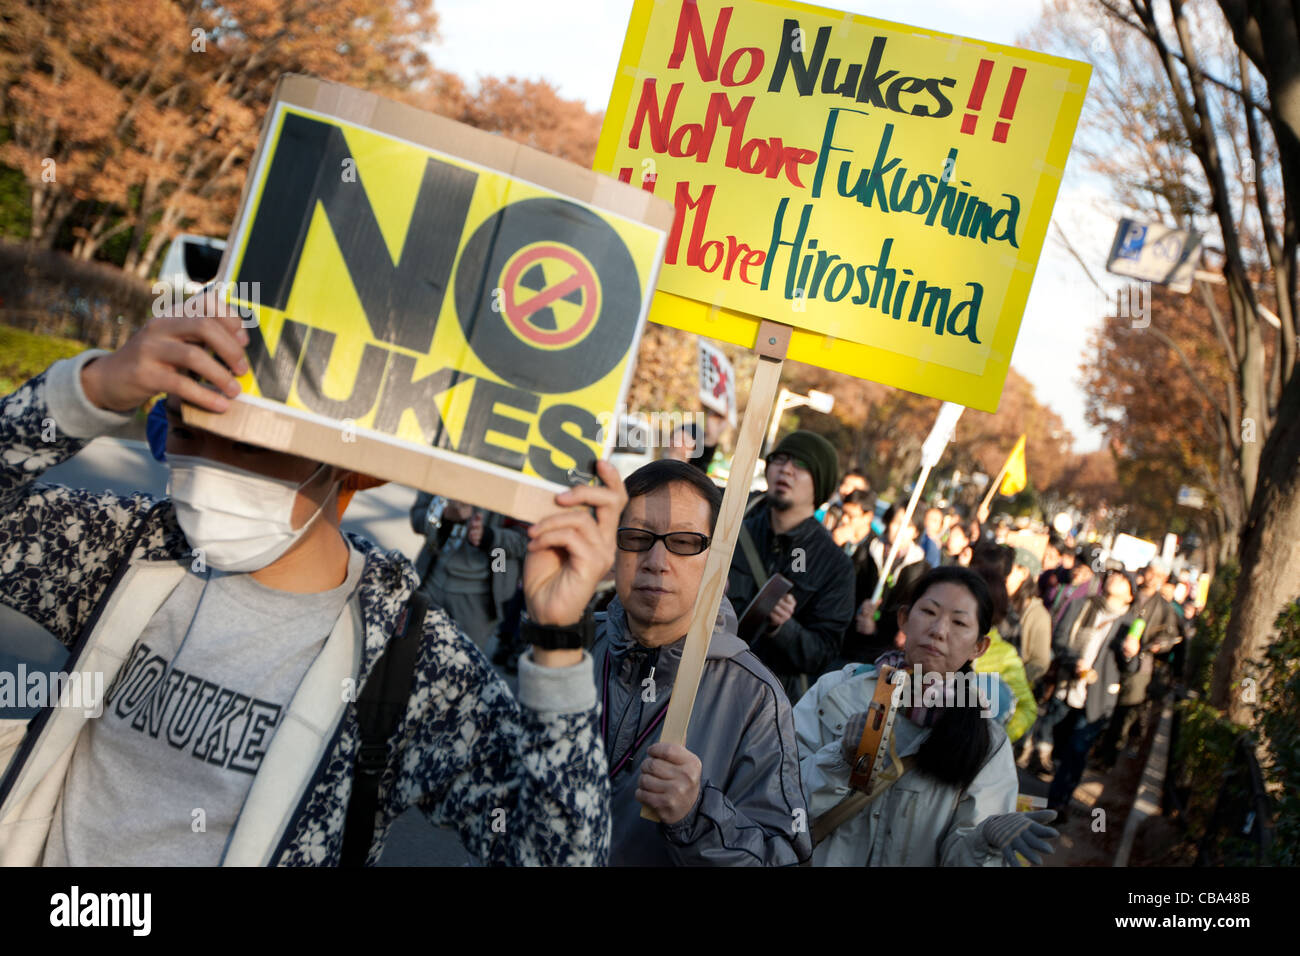 Demonstrations against nuclear power, with music provided by 'Drums of Fury' and other musicians, in Tokyo, - Stock Image